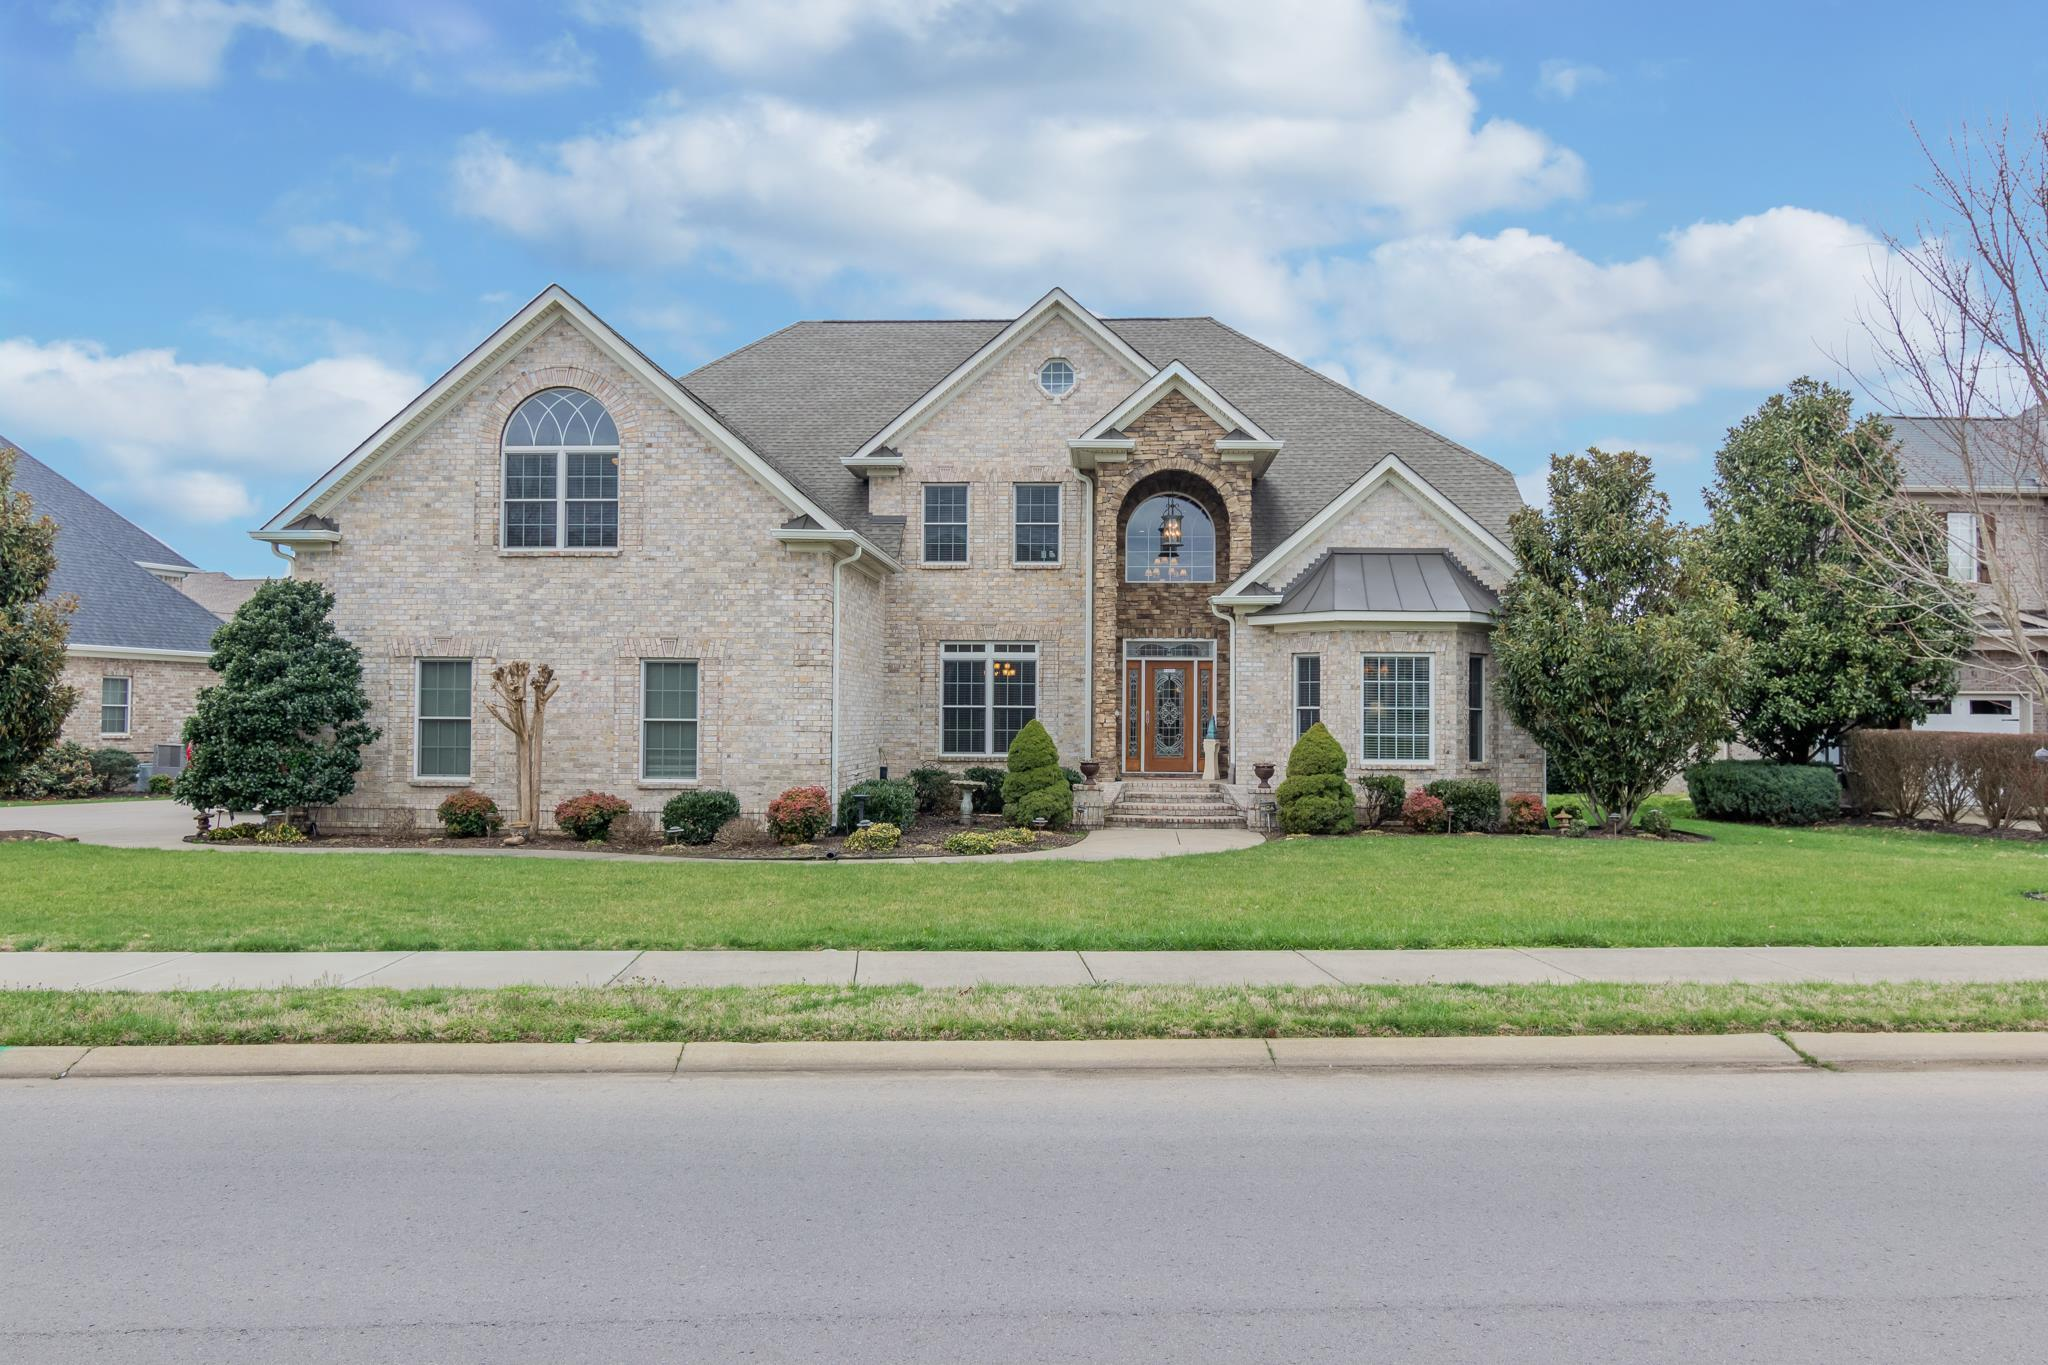 3323 Vintage Grove Pkwy, Murfreesboro in Rutherford County County, TN 37130 Home for Sale